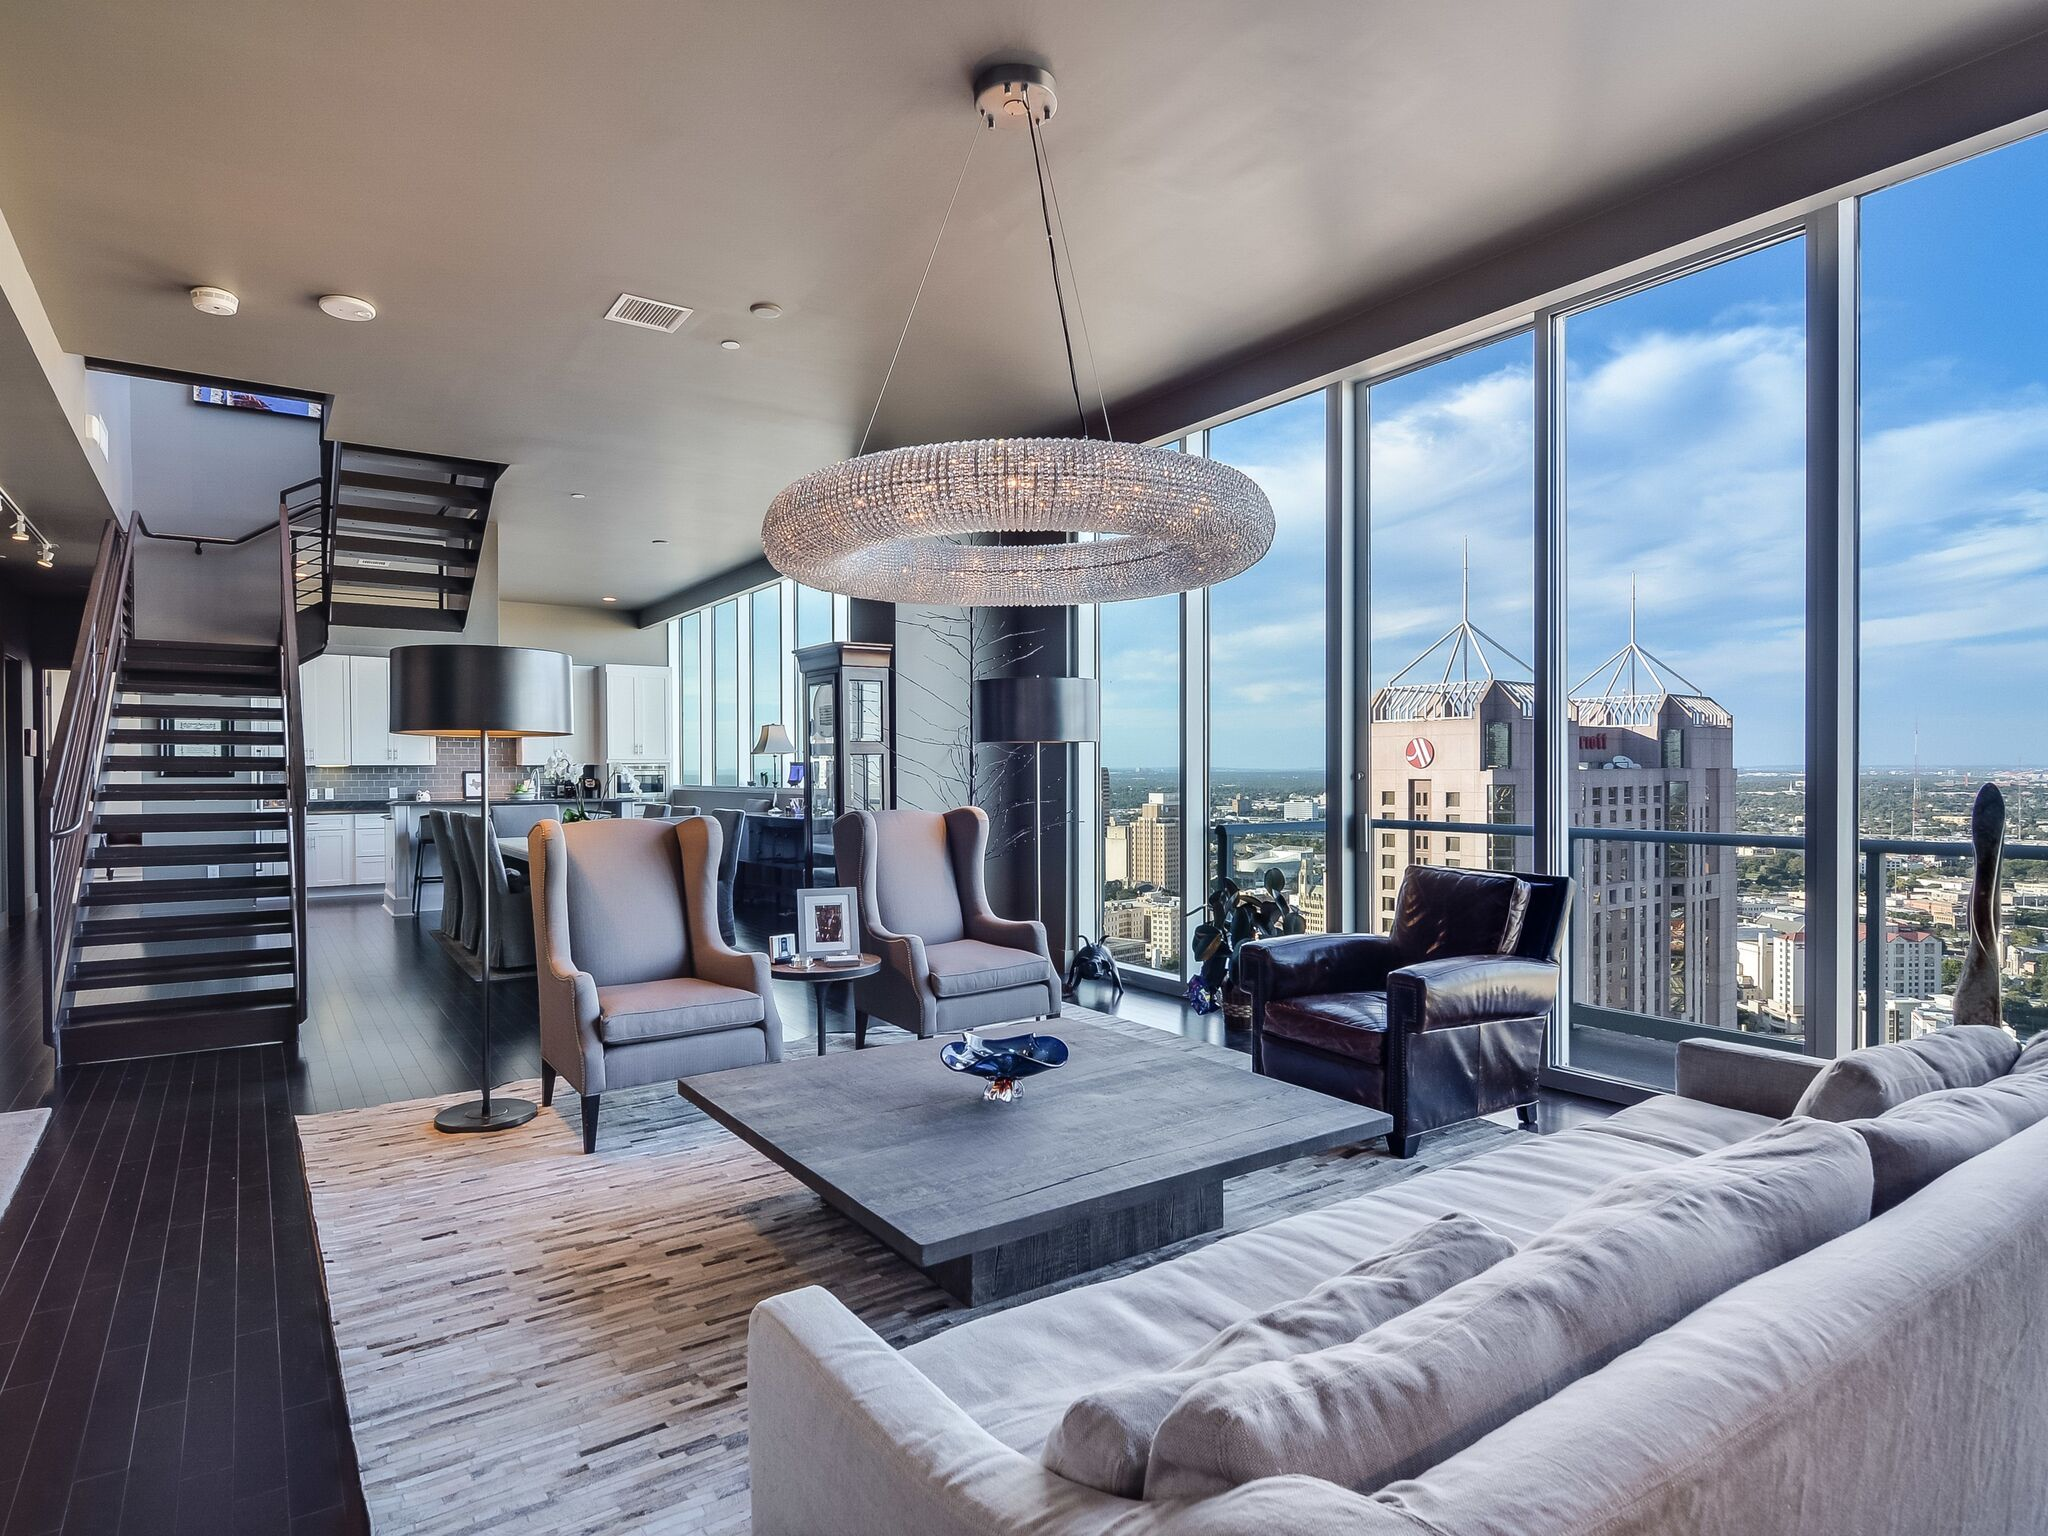 Luxury penthouse for sale in the Alteza Residences (above